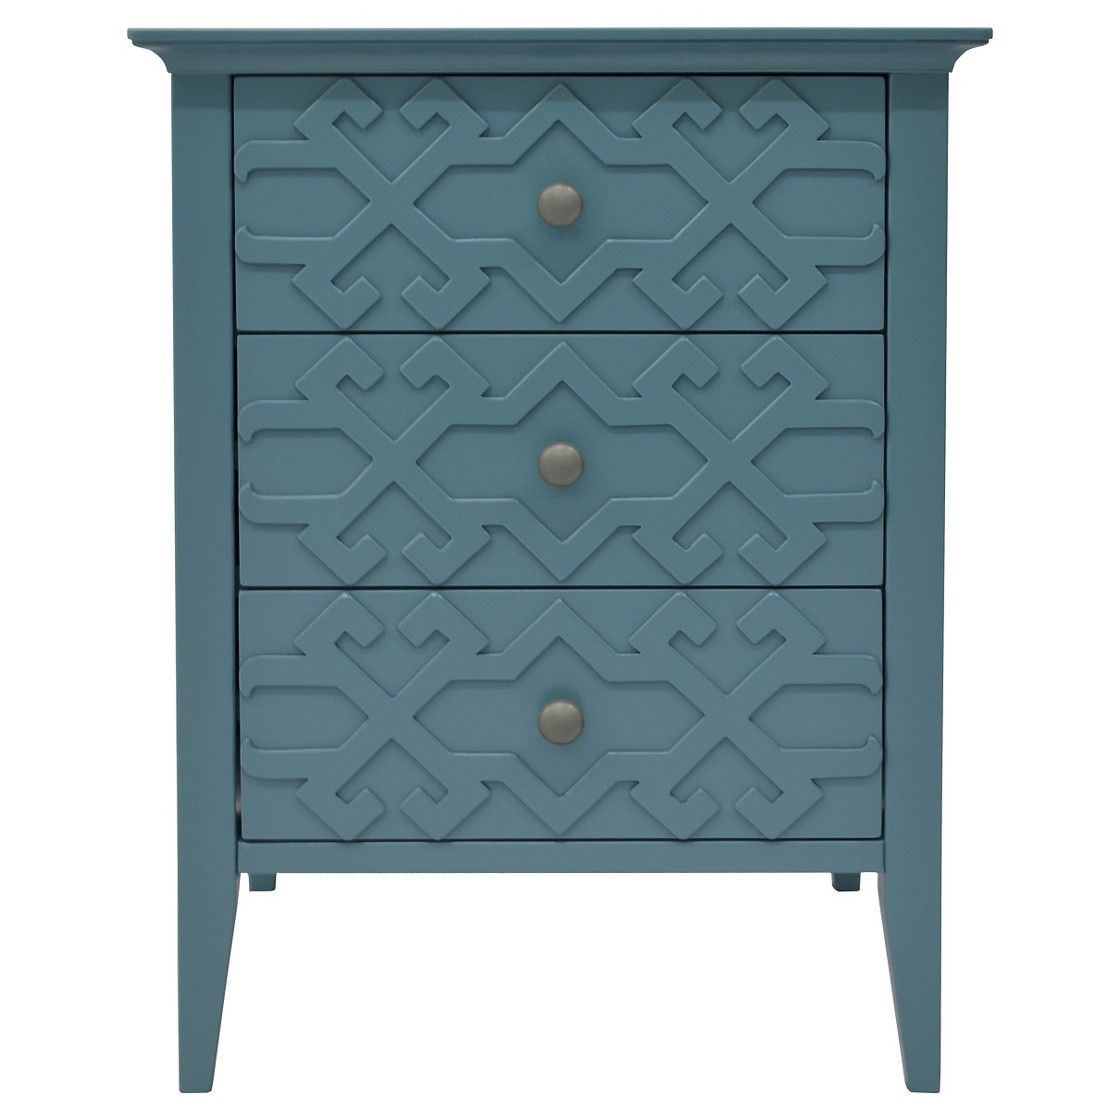 threshold accent table teal new house espresso camping bunnings tray drum throne for tall drummers backyard with umbrella oval dining and chairs room console poolside living end